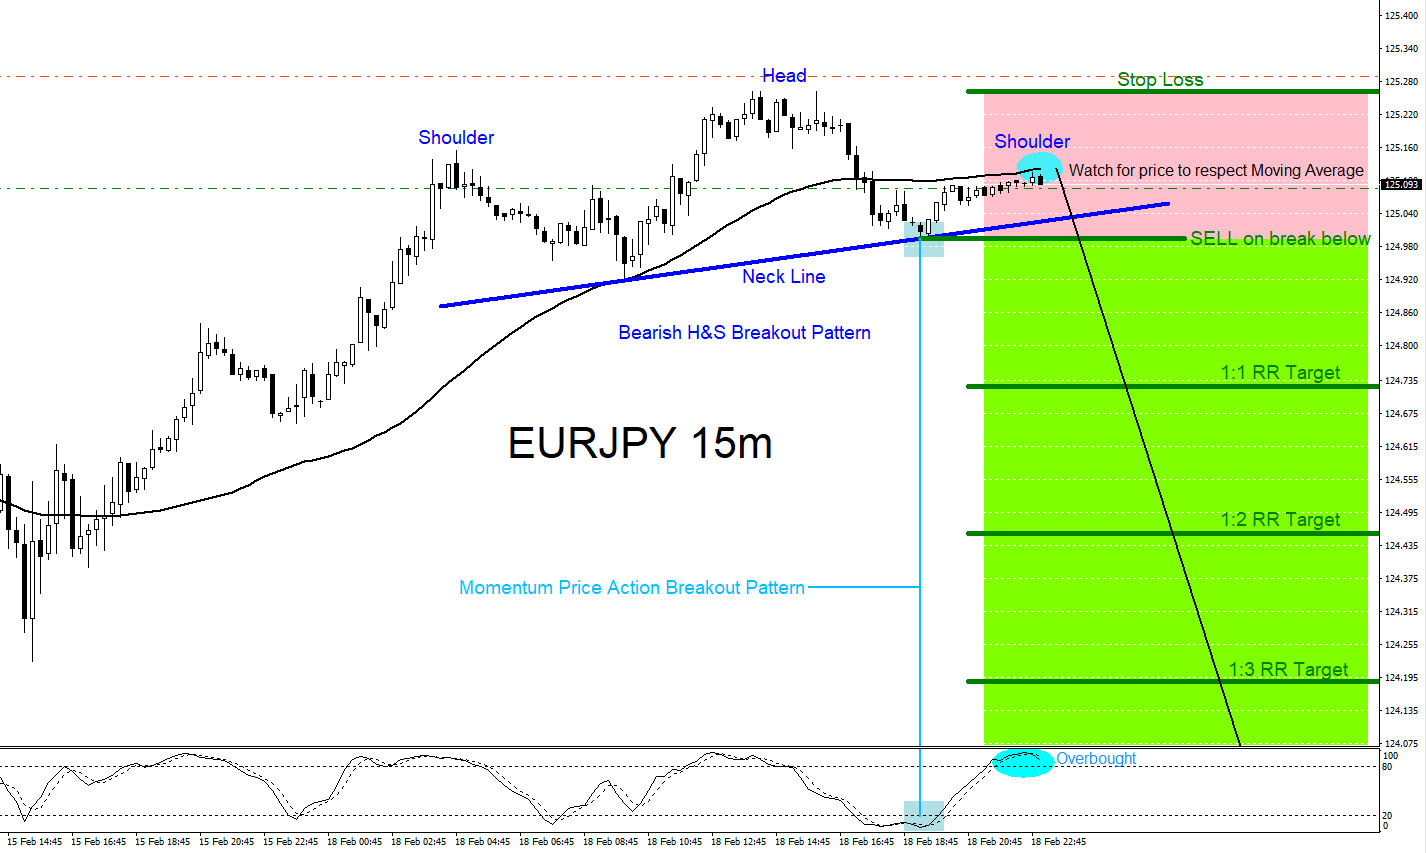 EURJPY, forex, technical analysis, trading, market, patterns, elliottwave, elliott wave